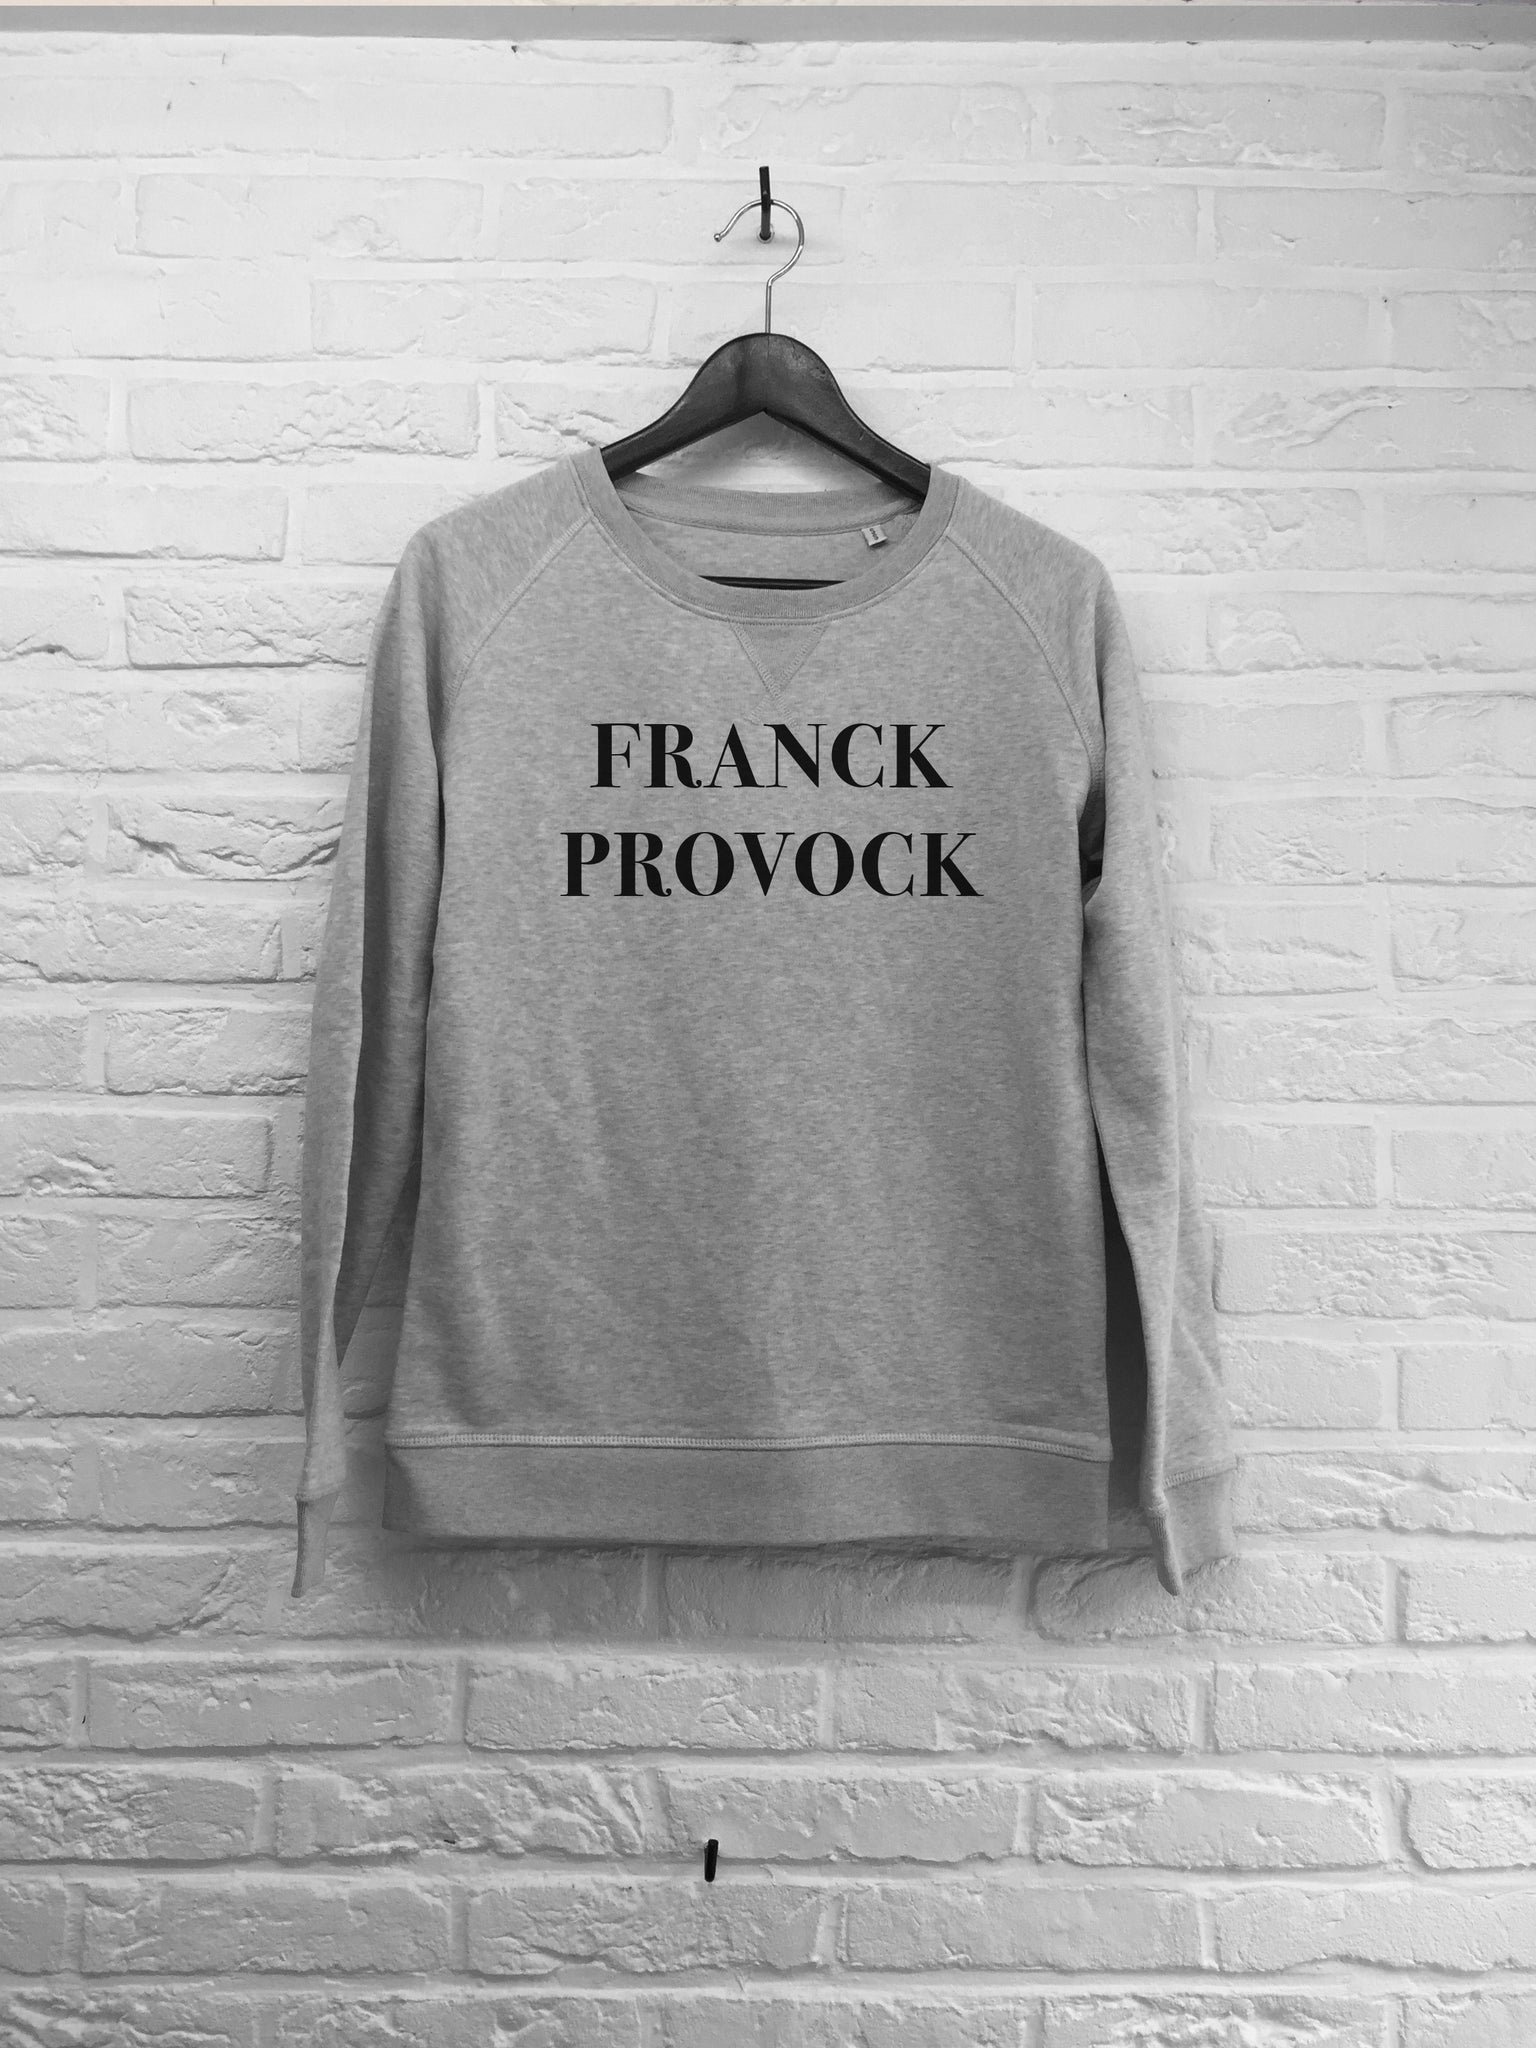 Franck Provock - Sweat - Femme-Sweat shirts-Atelier Amelot